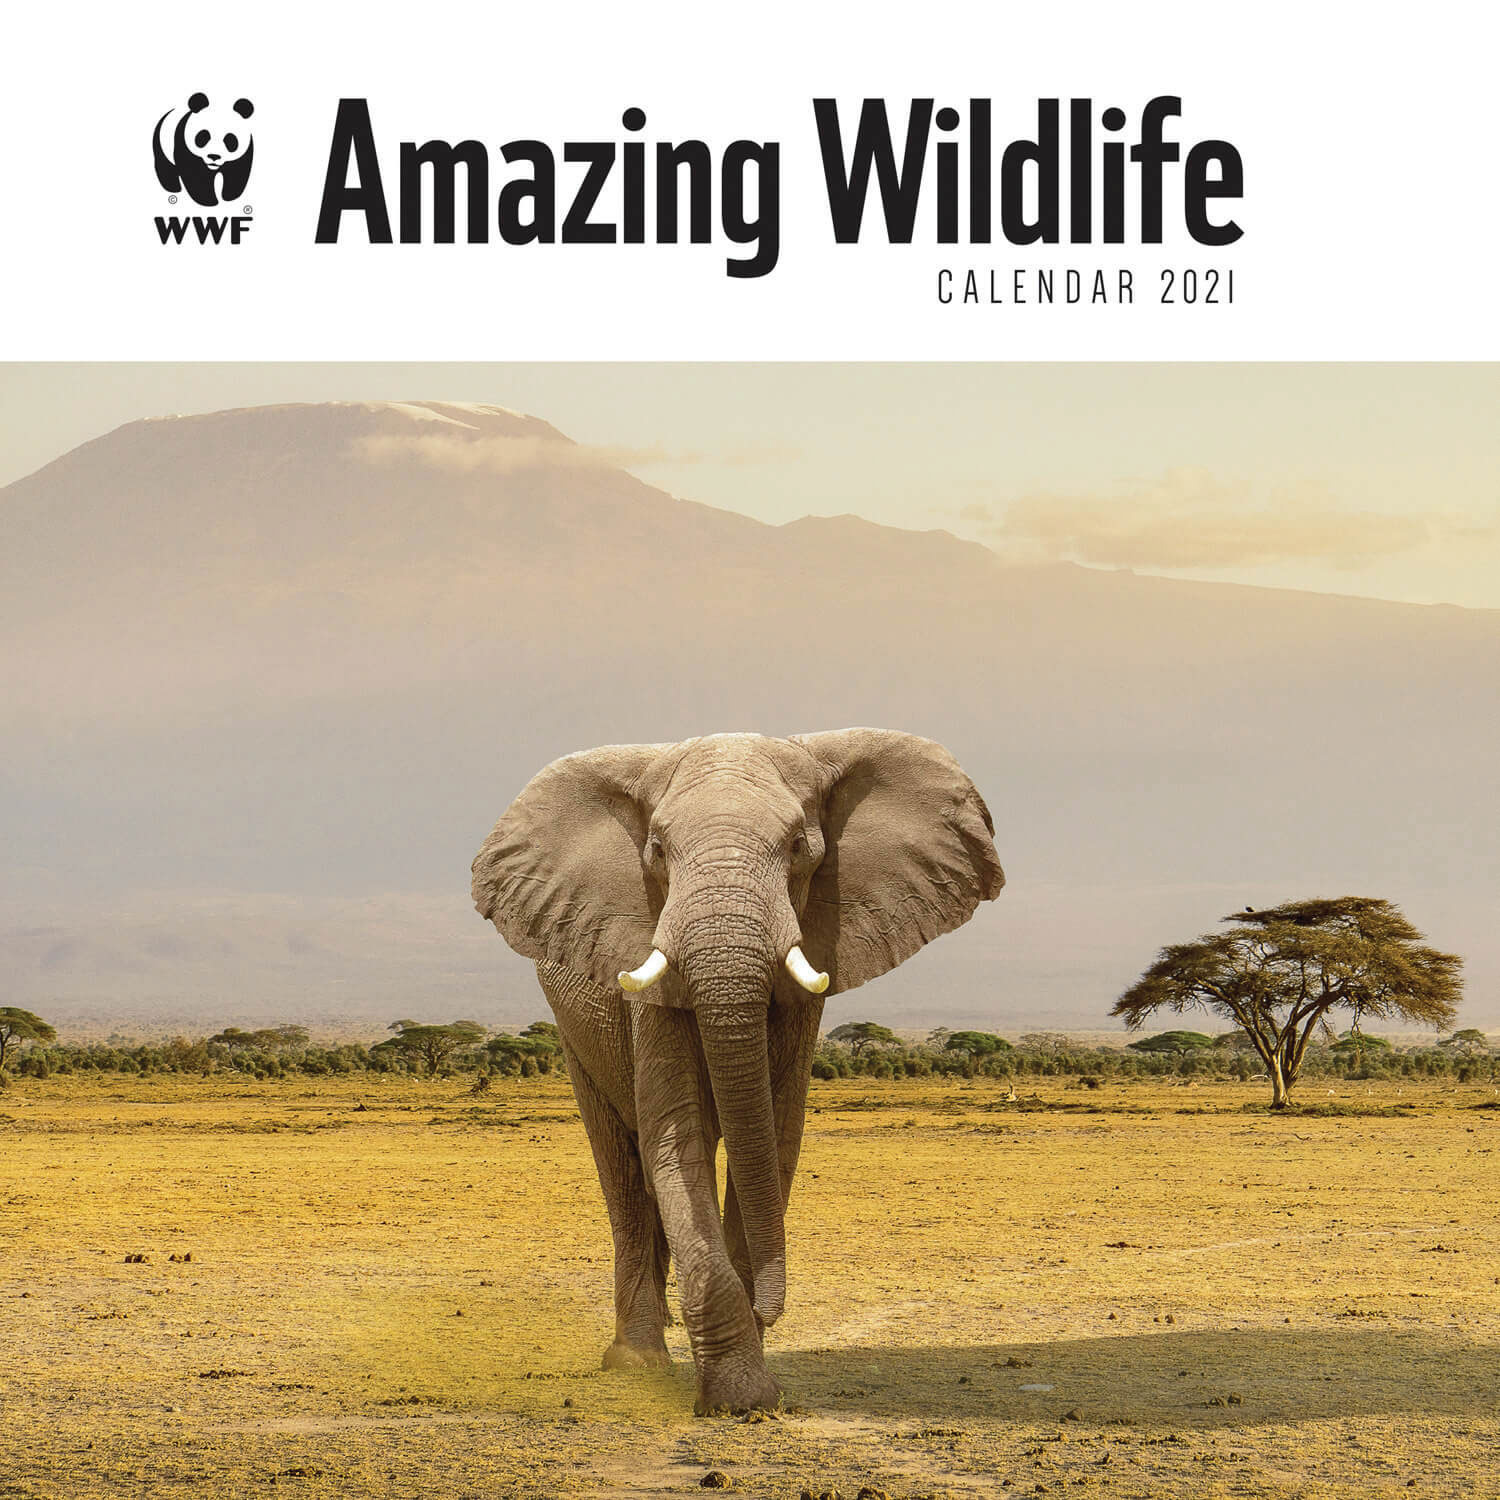 Amazing Wildlife WWF Kalender 2021